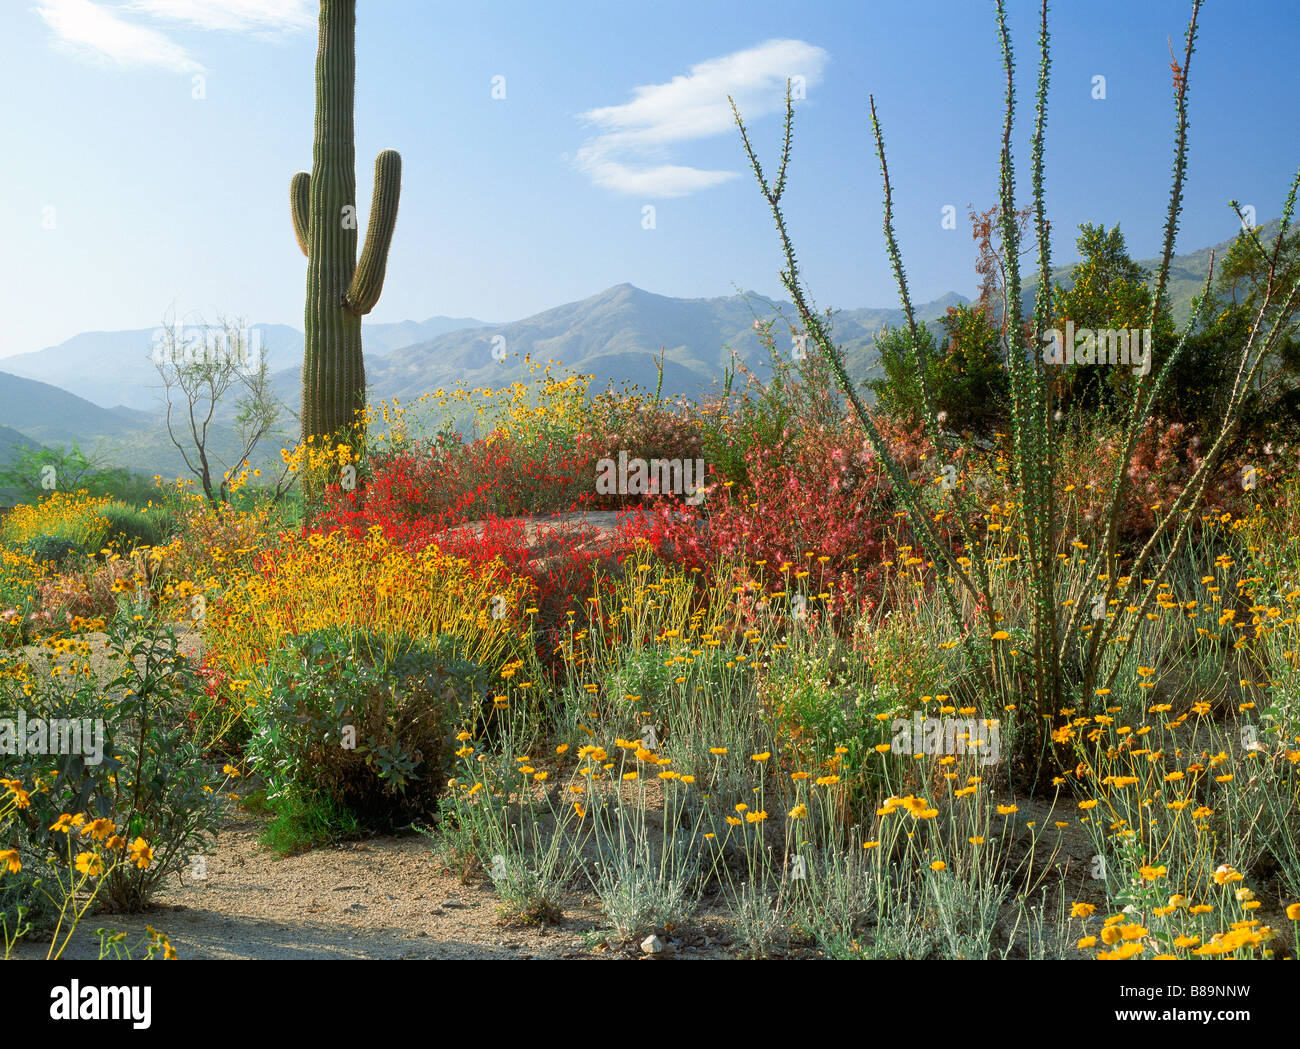 Saguaro cactus and spring flowers below mountains in California desert scenic near Palm Springs Stock Photo